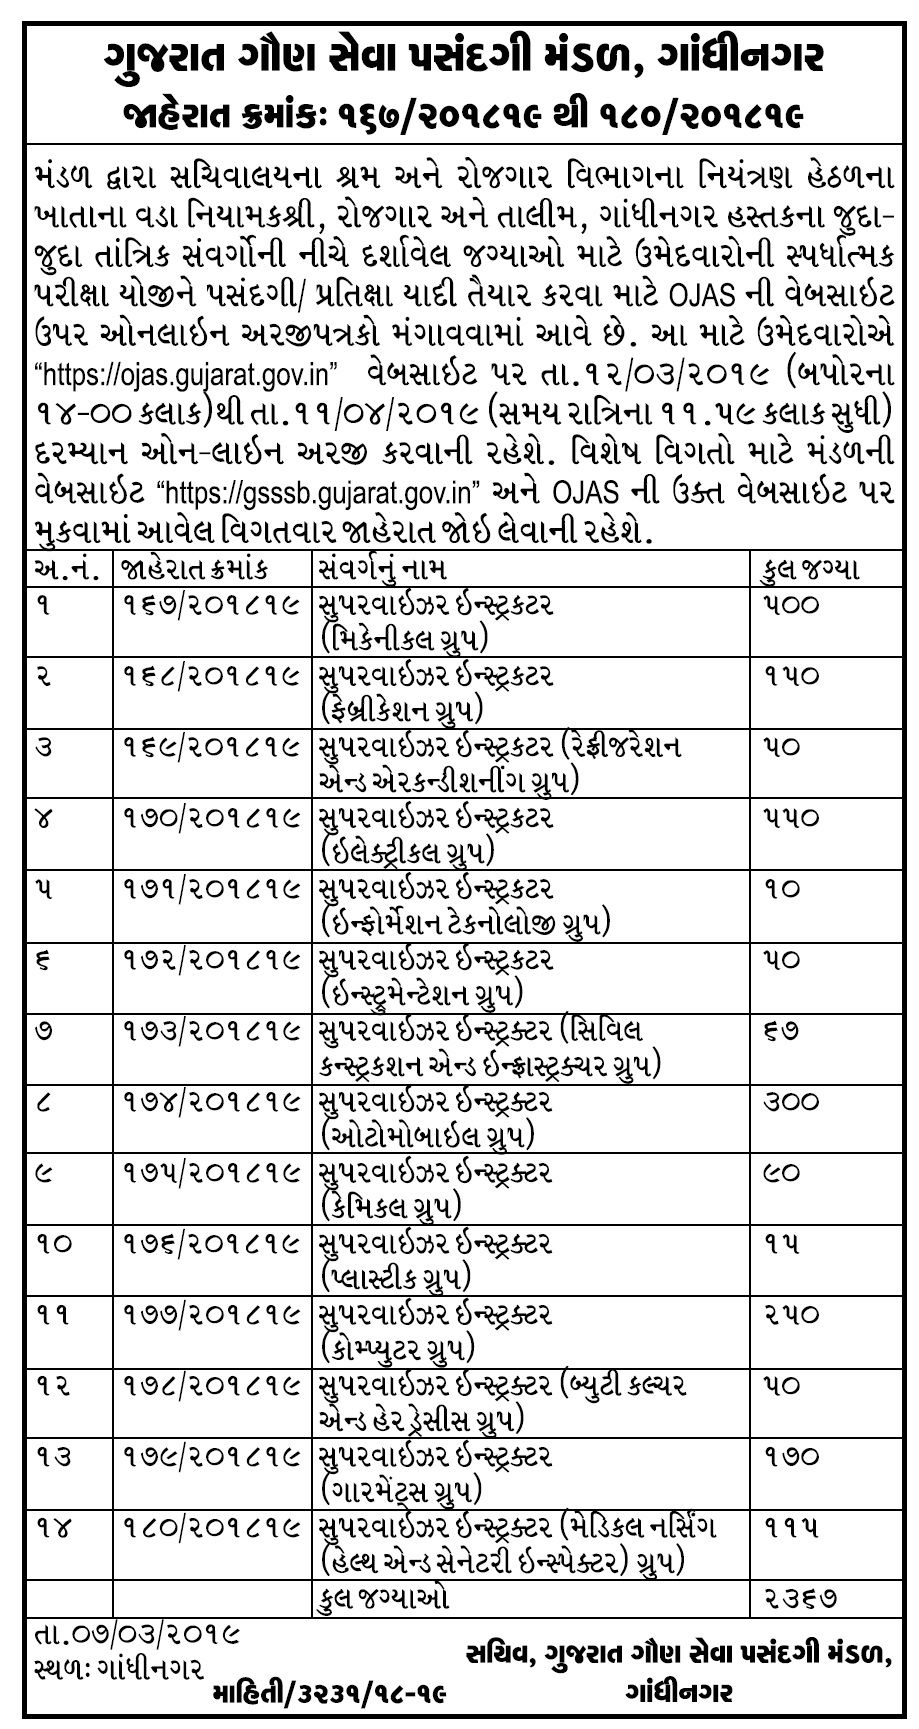 2367 Gsssb Iti Instructor Supervisor Bharti 2019 At Ojas Gujarat Gov In Government Jobs Supervisor Recruitment Advertising